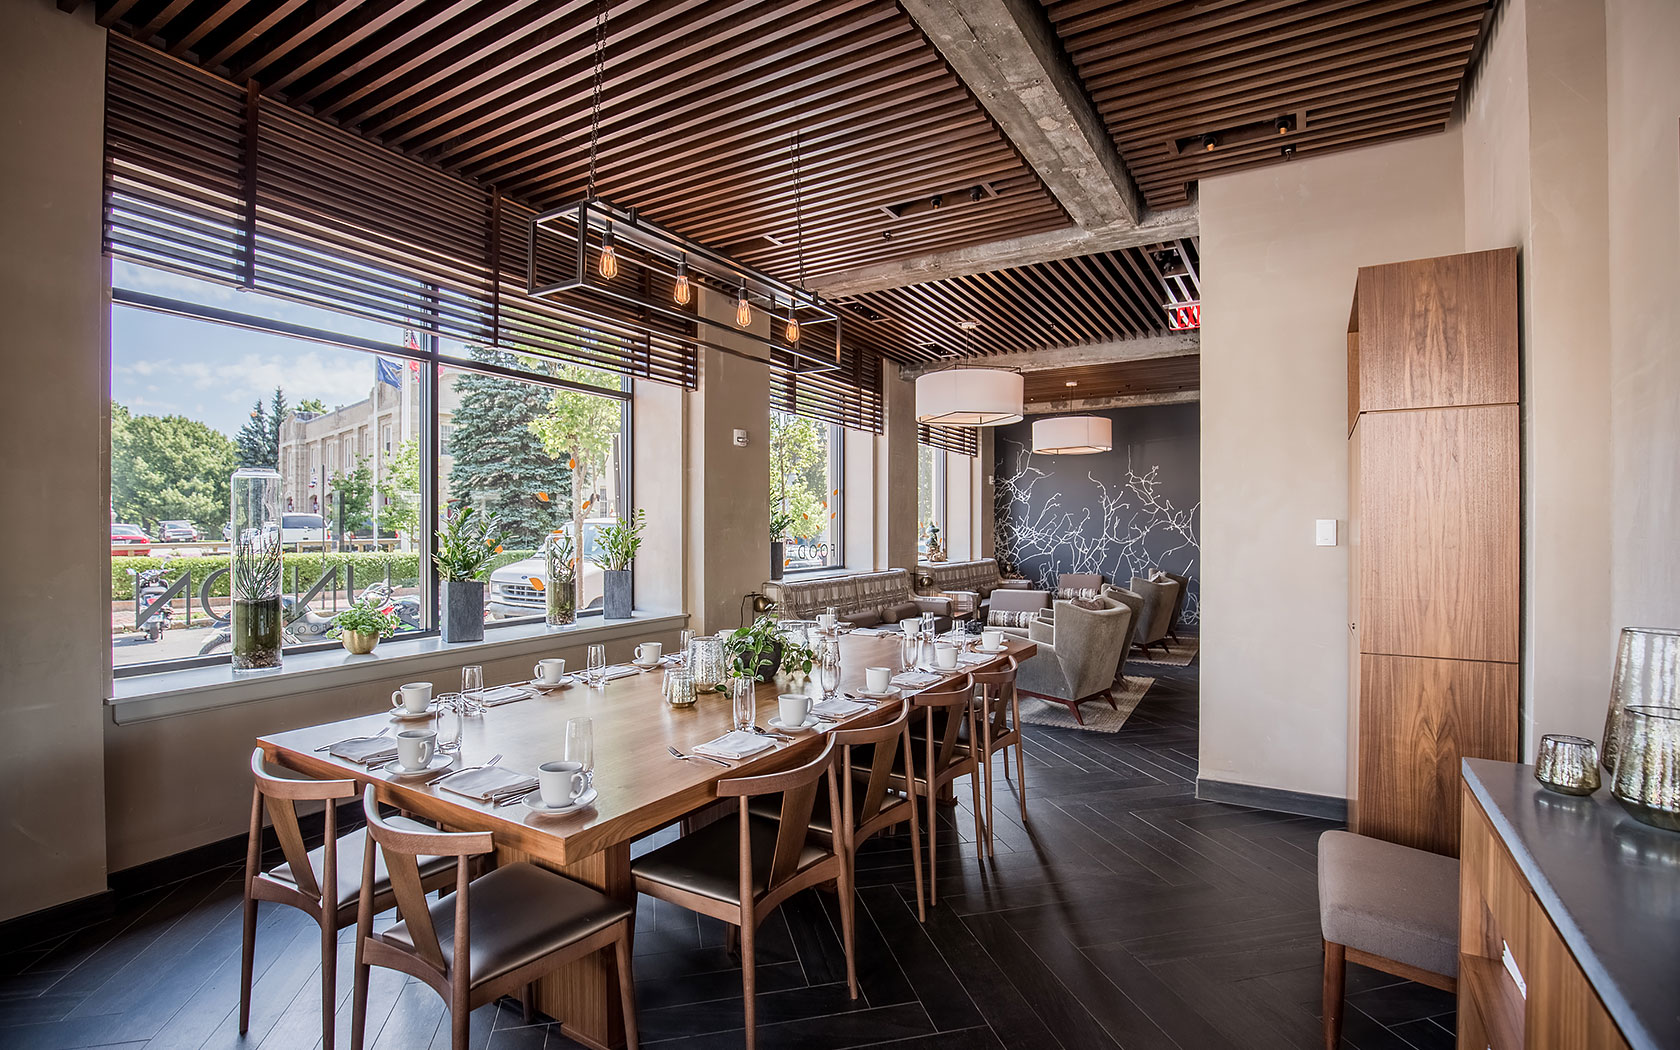 Union Restaurant Dining Area With Wooden Tables And Large Window Panels